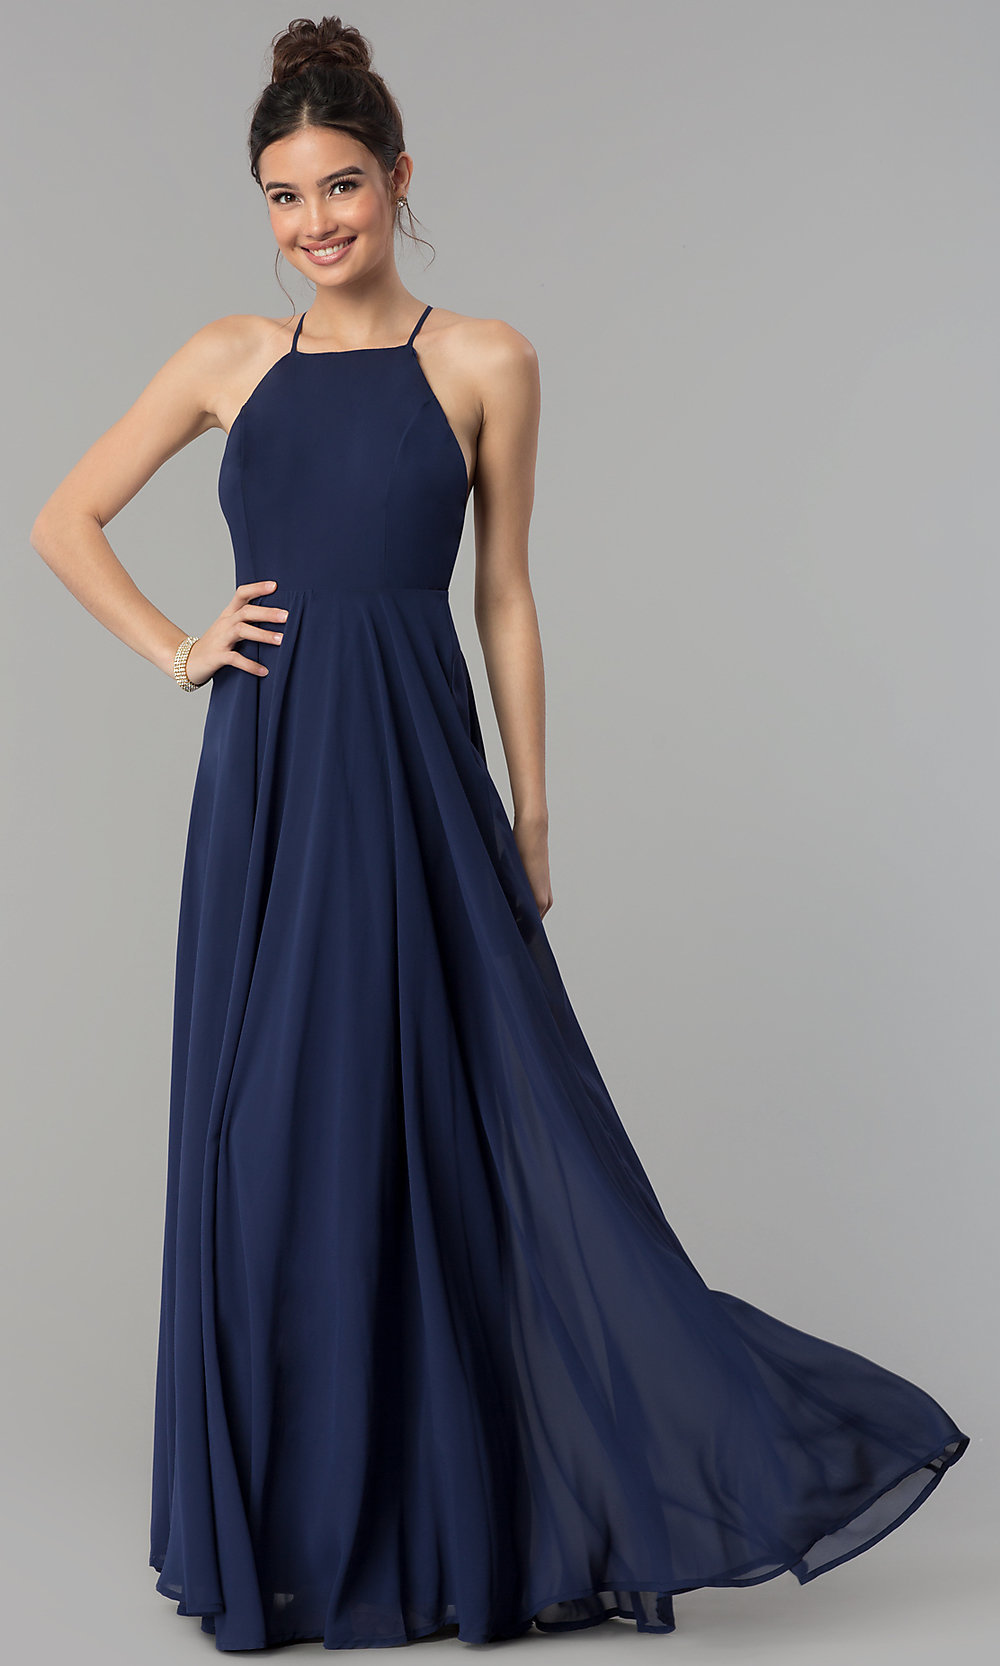 Open Back Formal A Line Chiffon Prom Dress Promgirl